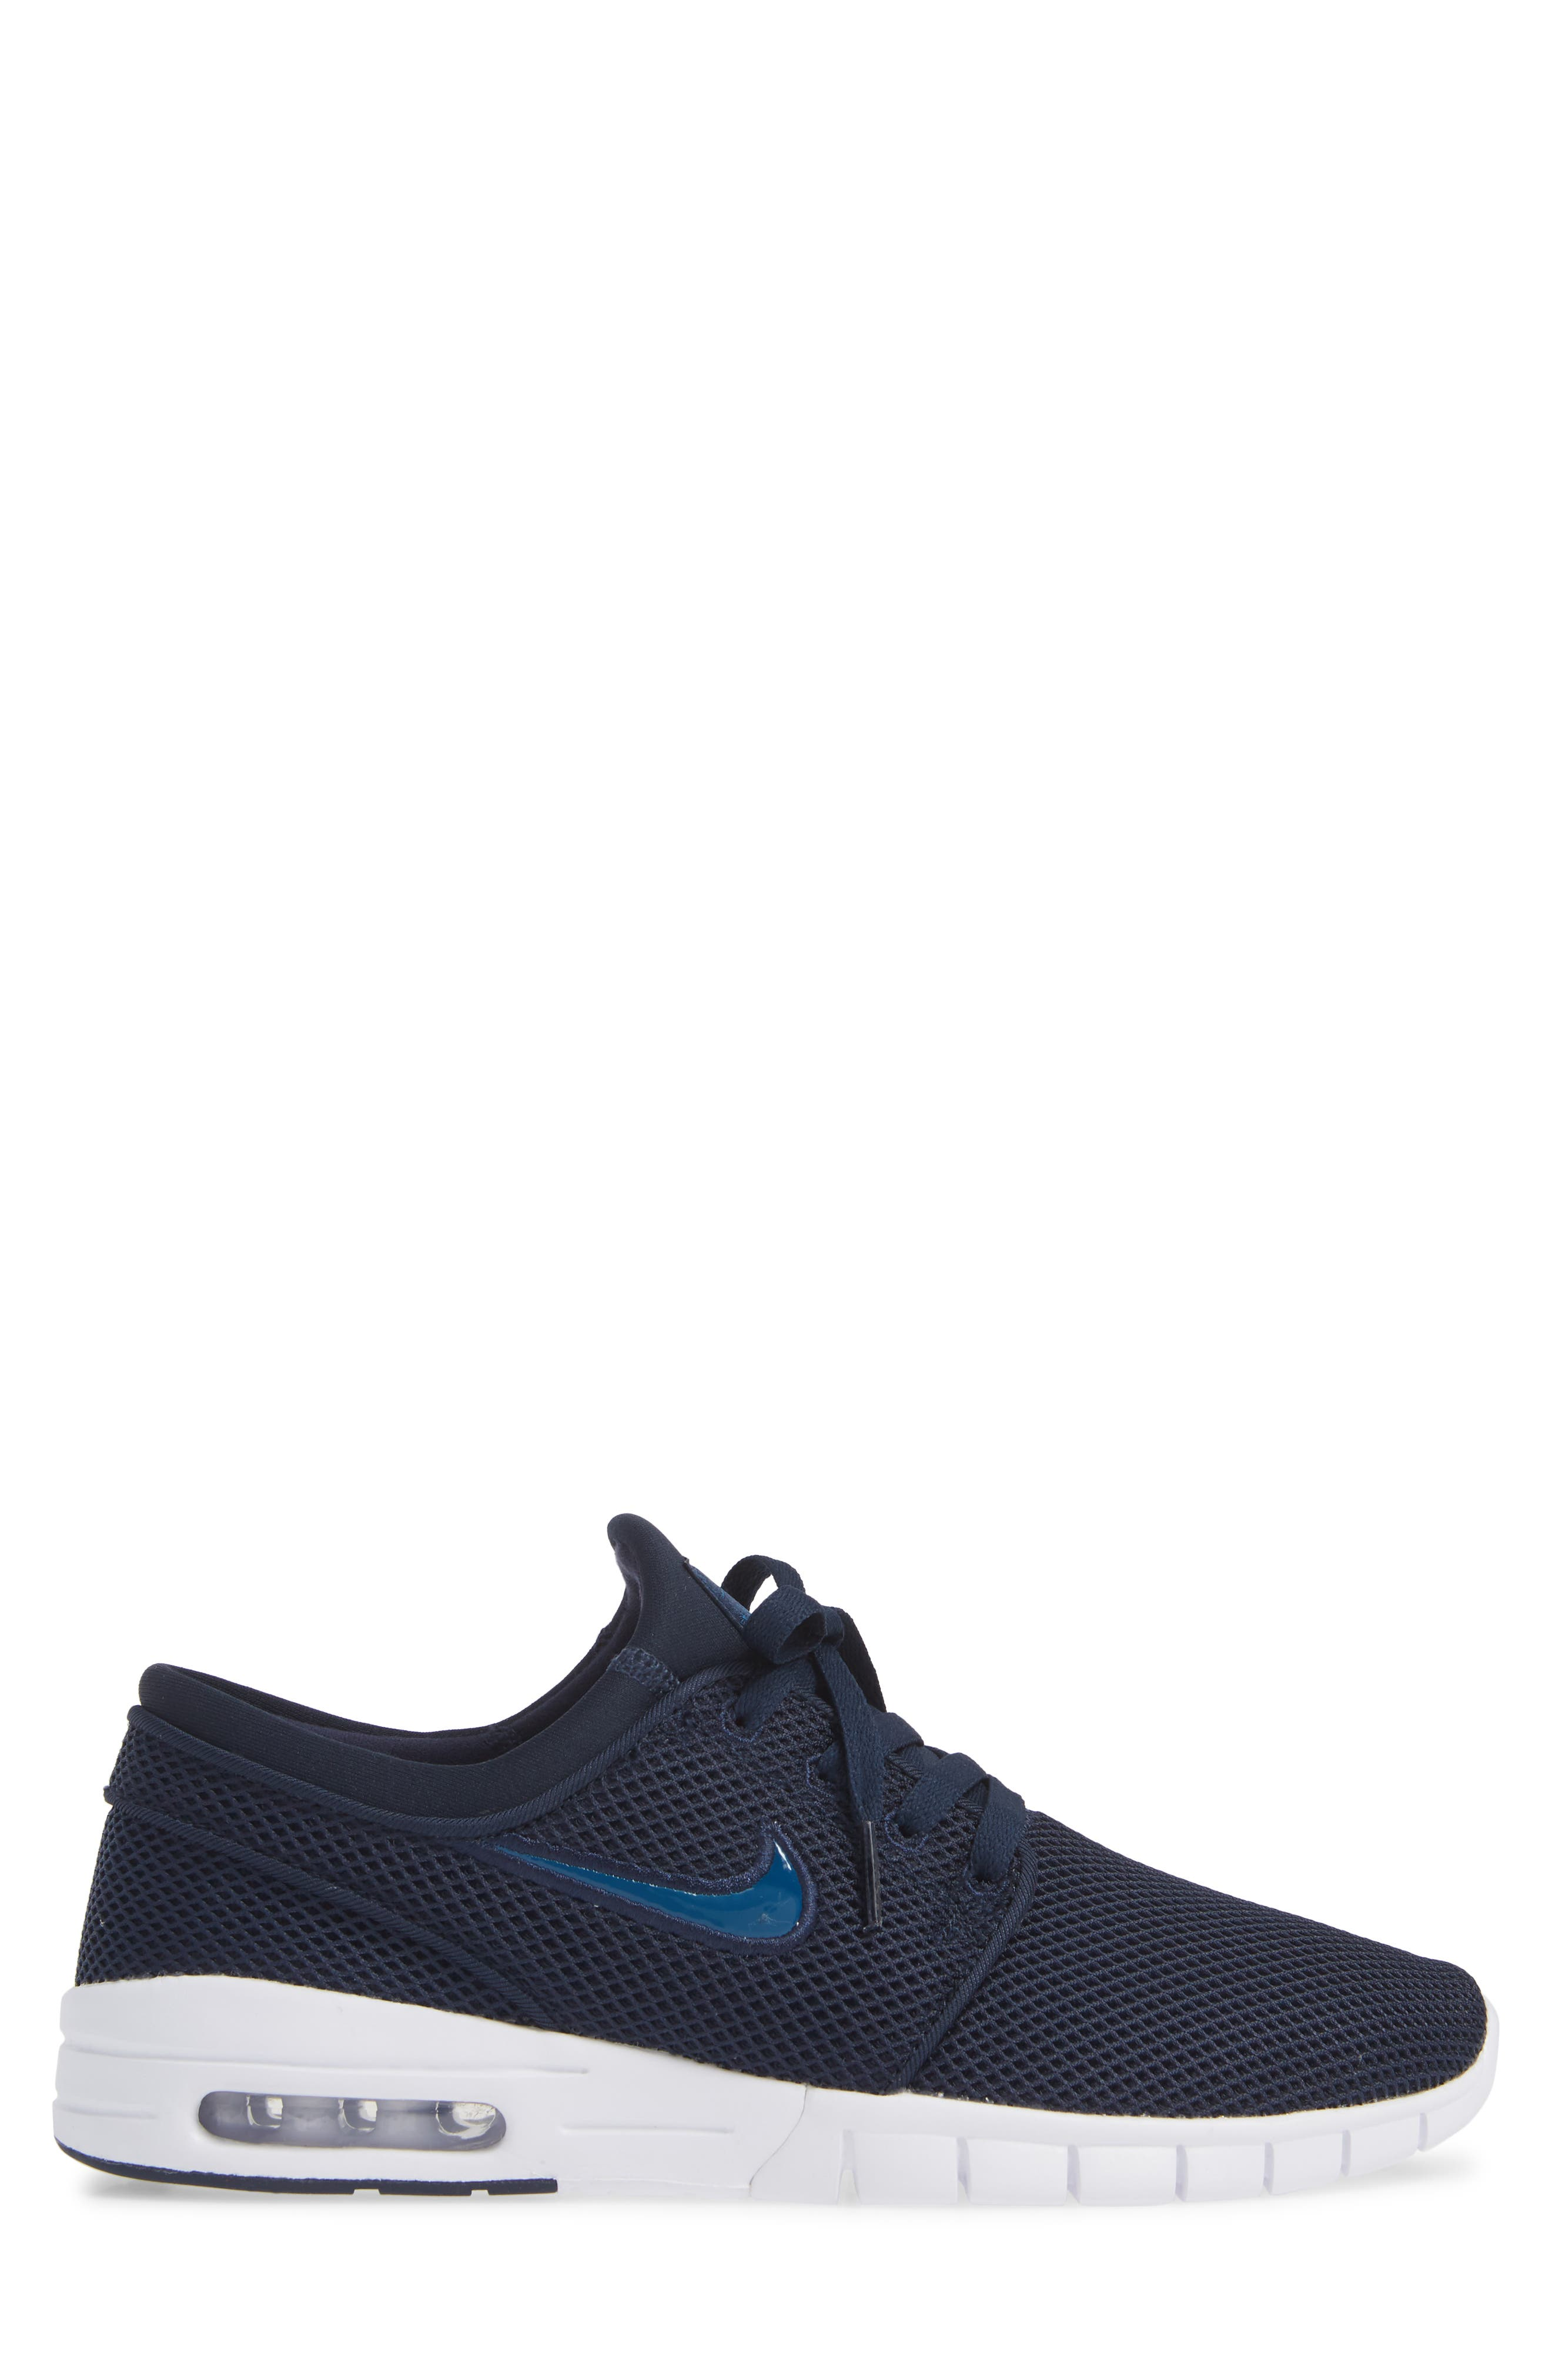 'Stefan Janoski - Max SB' Skate Shoe,                             Alternate thumbnail 3, color,                             407